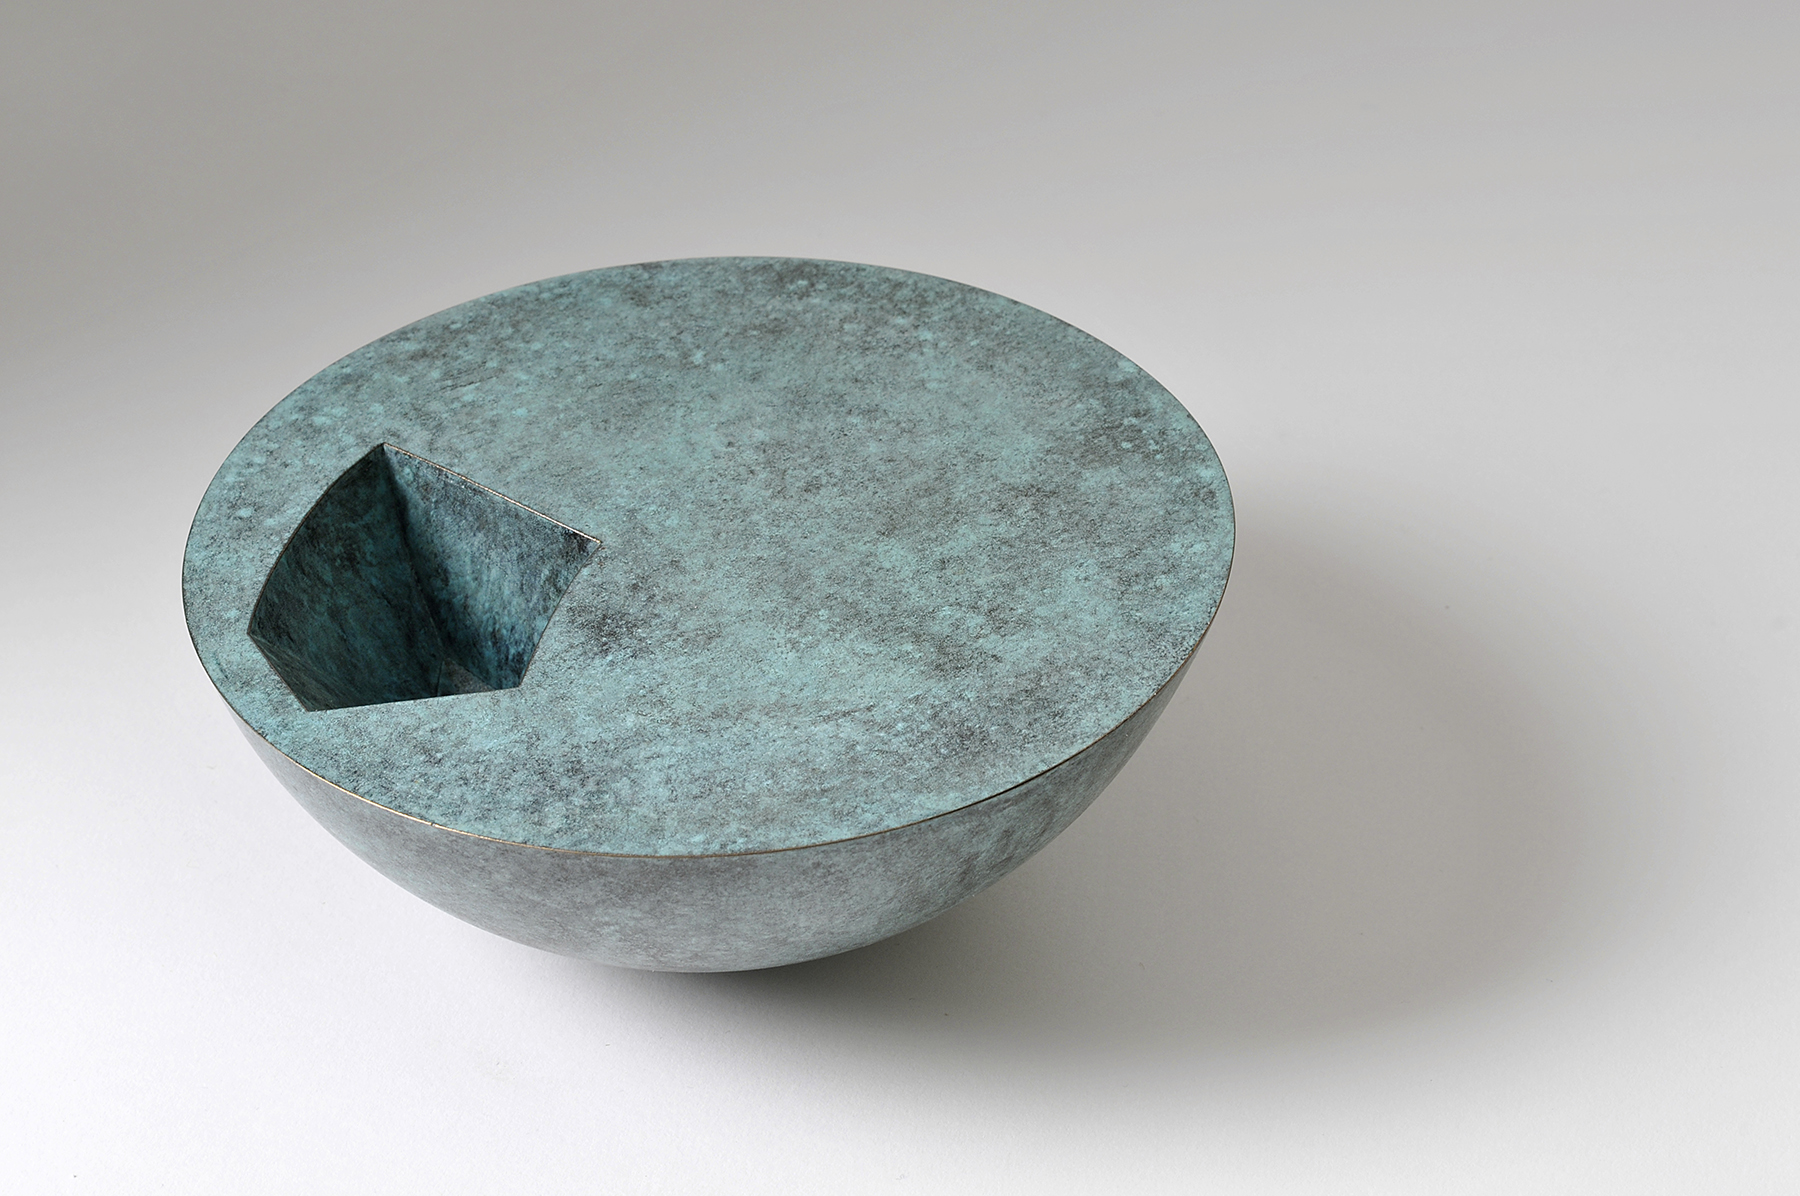 'Void Bowl' in verdigris copper